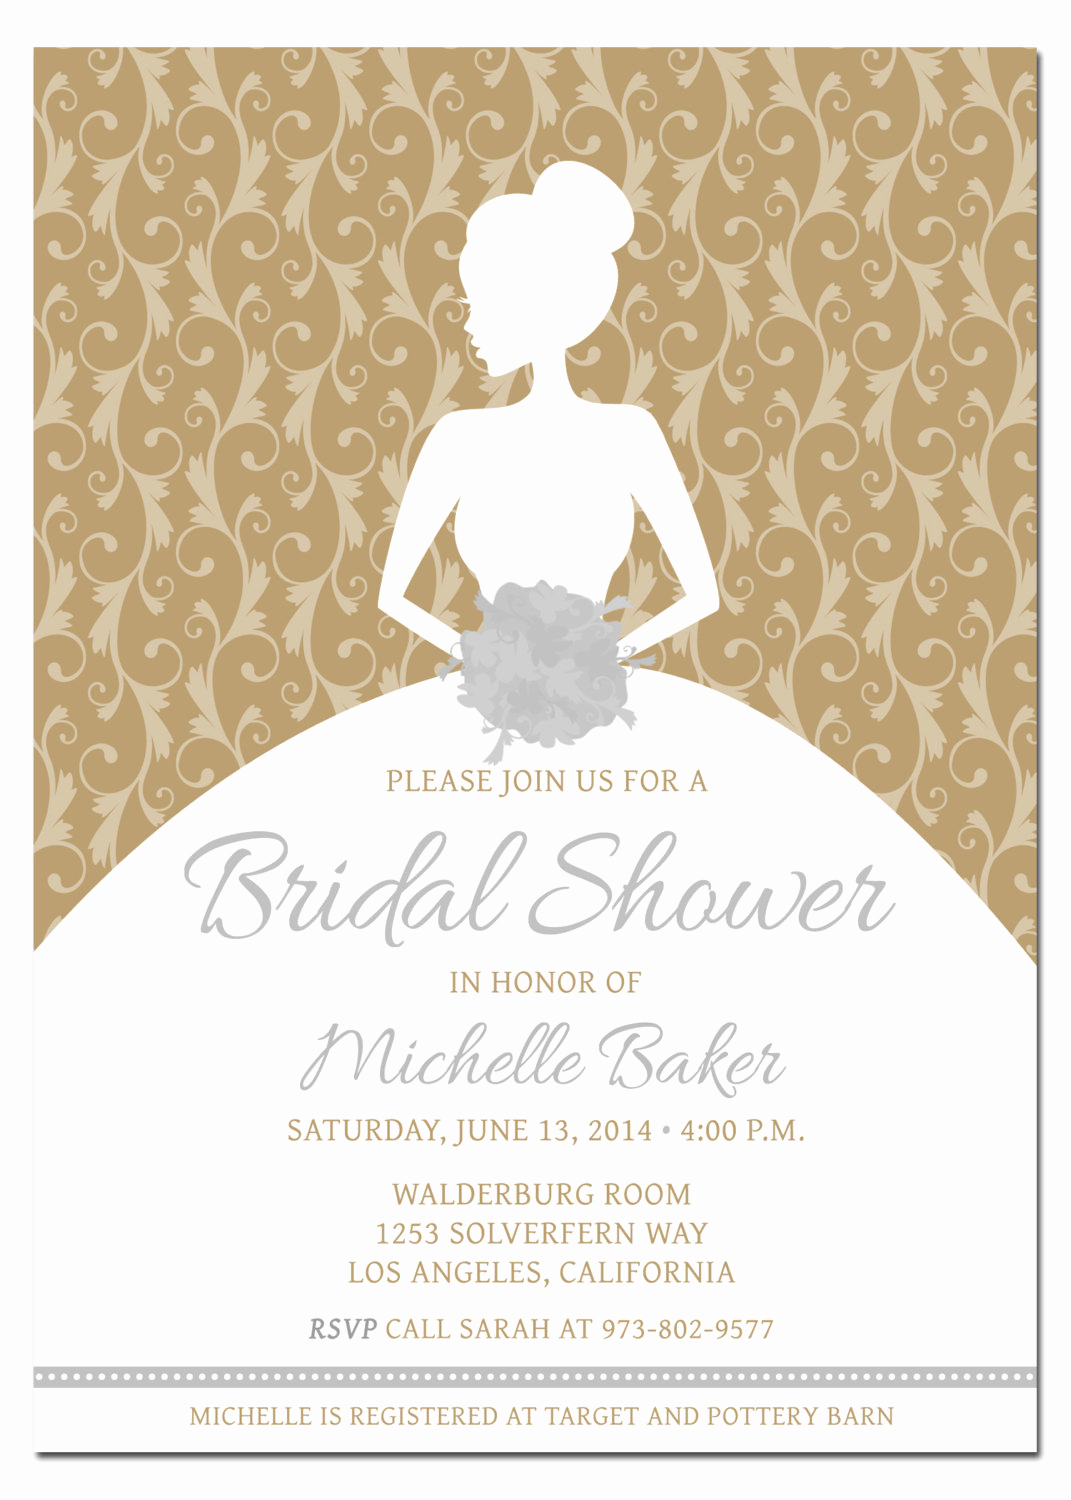 Printable Bridal Shower Invitation Templates Lovely Printable Diy Bridal Shower Invitation Template with